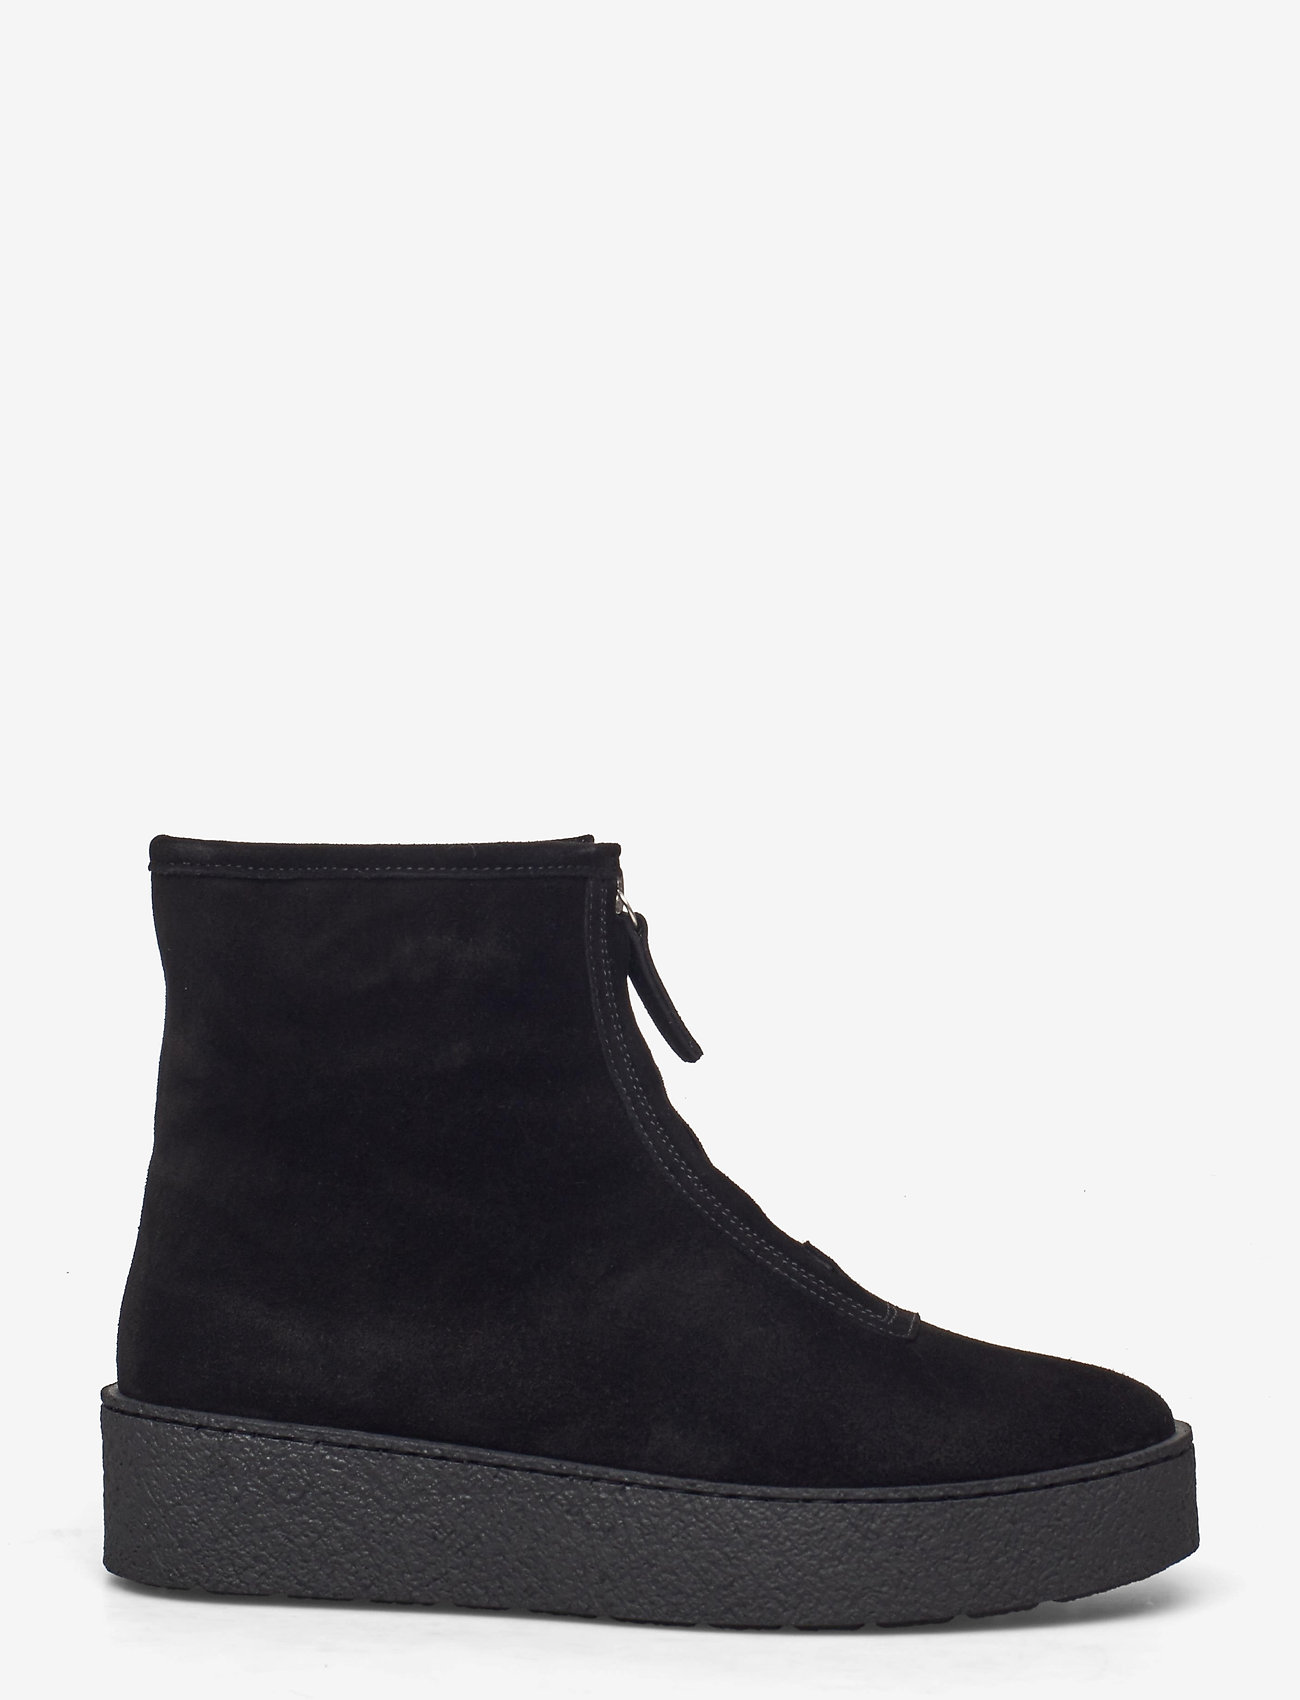 Billi Bi - Warm lining 14860 - flat ankle boots - black suede/silver 503 - 1